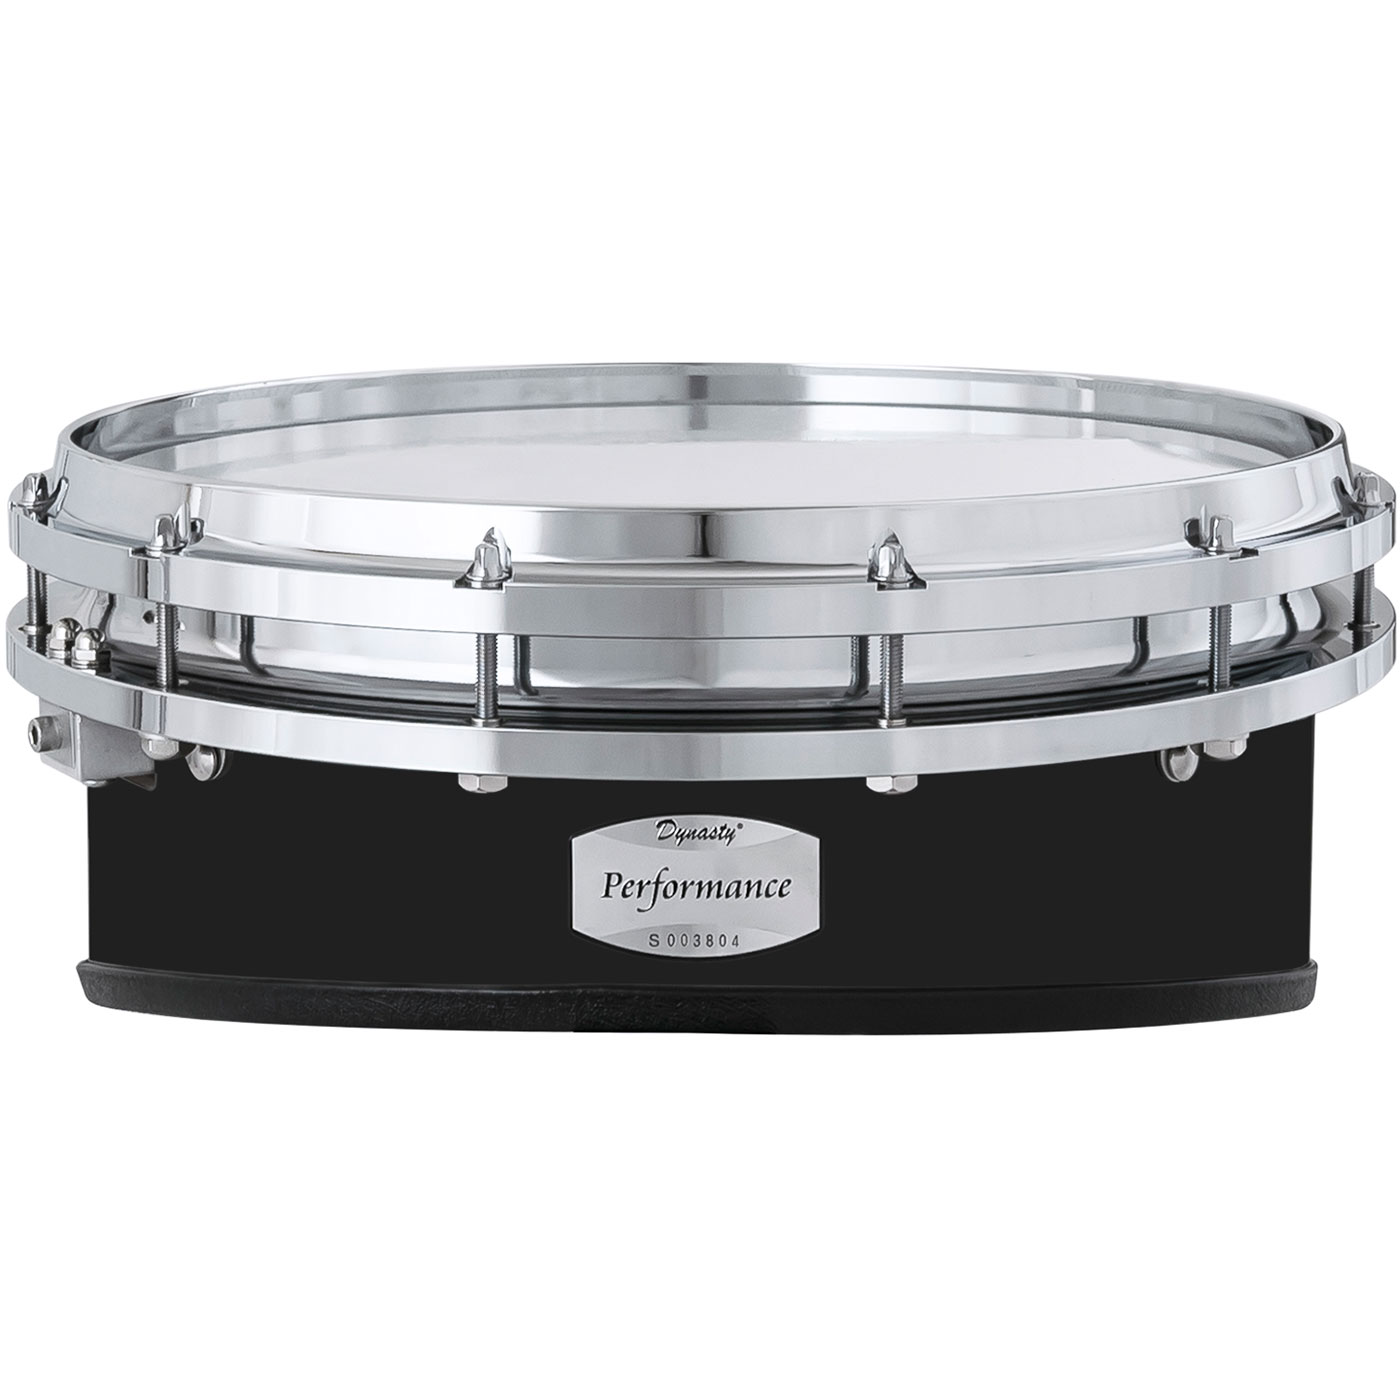 """Dynasty 14"""" DFW Performance Wedge Marching Snare Drum with Chrome Hardware in Black"""